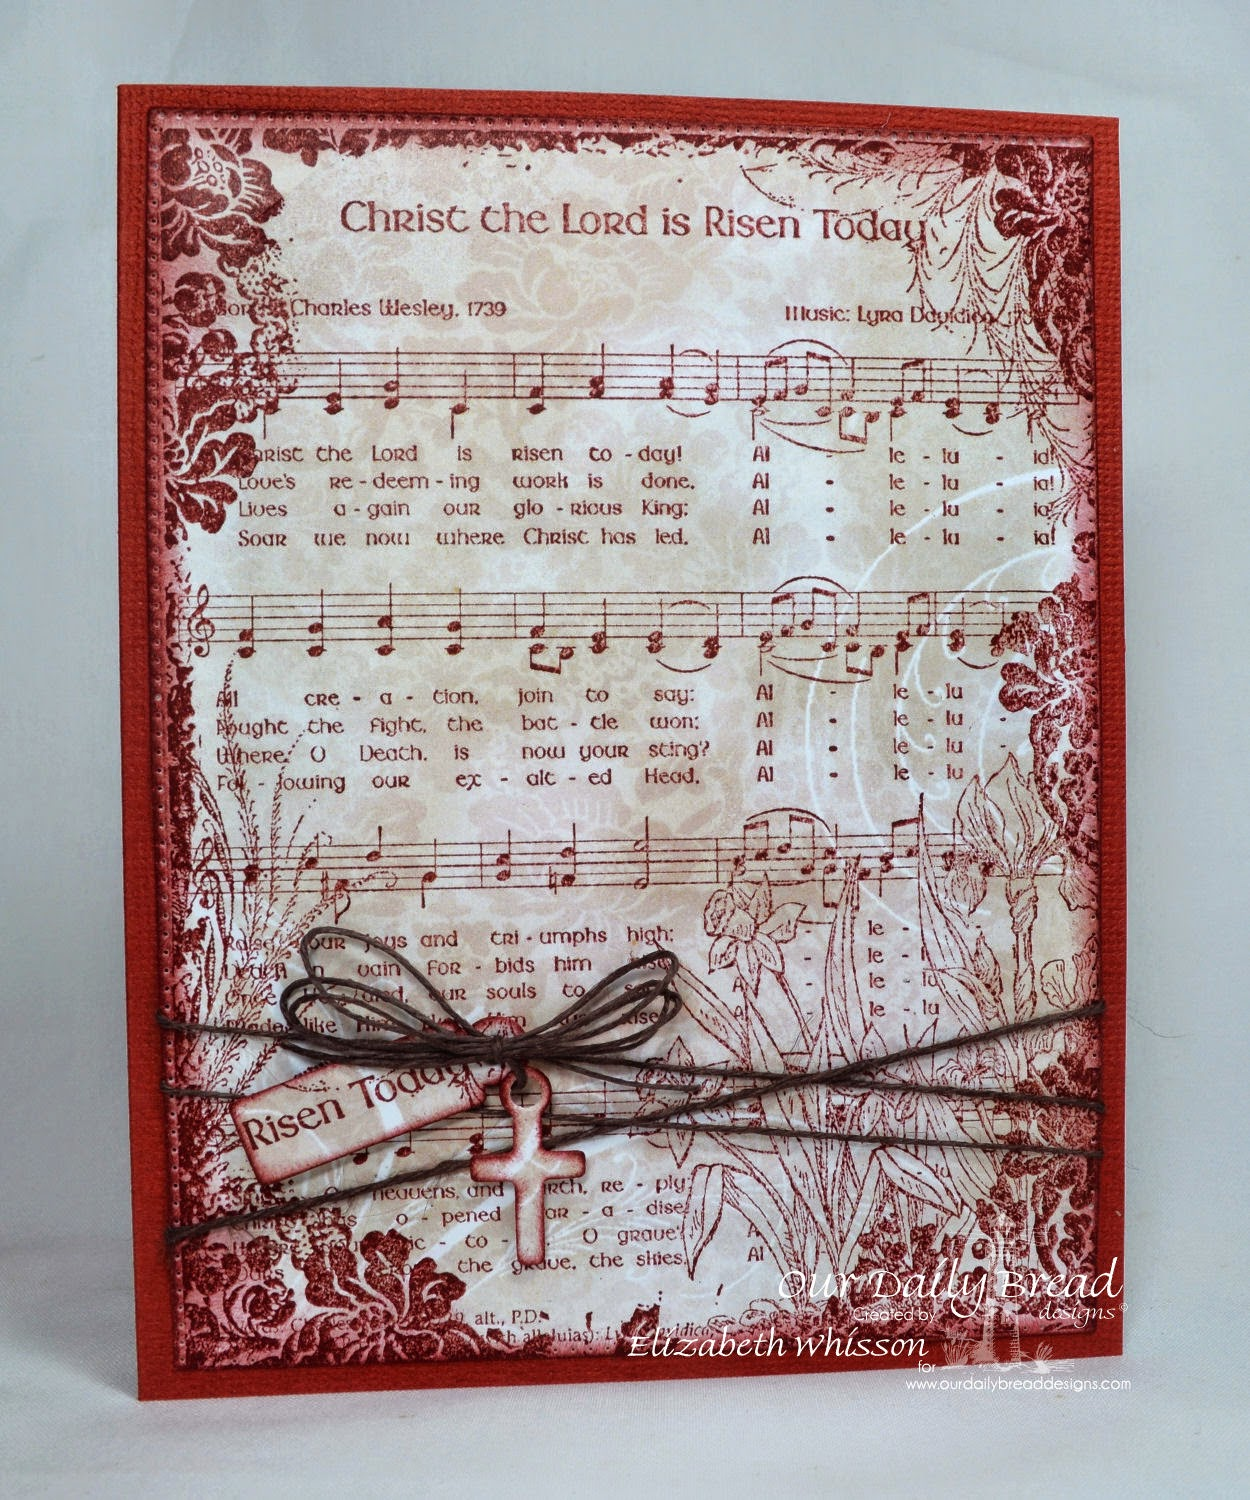 Elizabeth Whisson, Our Daily Bread Designs, ODBD, ODBDDT, Christ the Lord is Risen Today, hymn, Flourished Star Pattern dies, Distress Ink Aged Mahogany